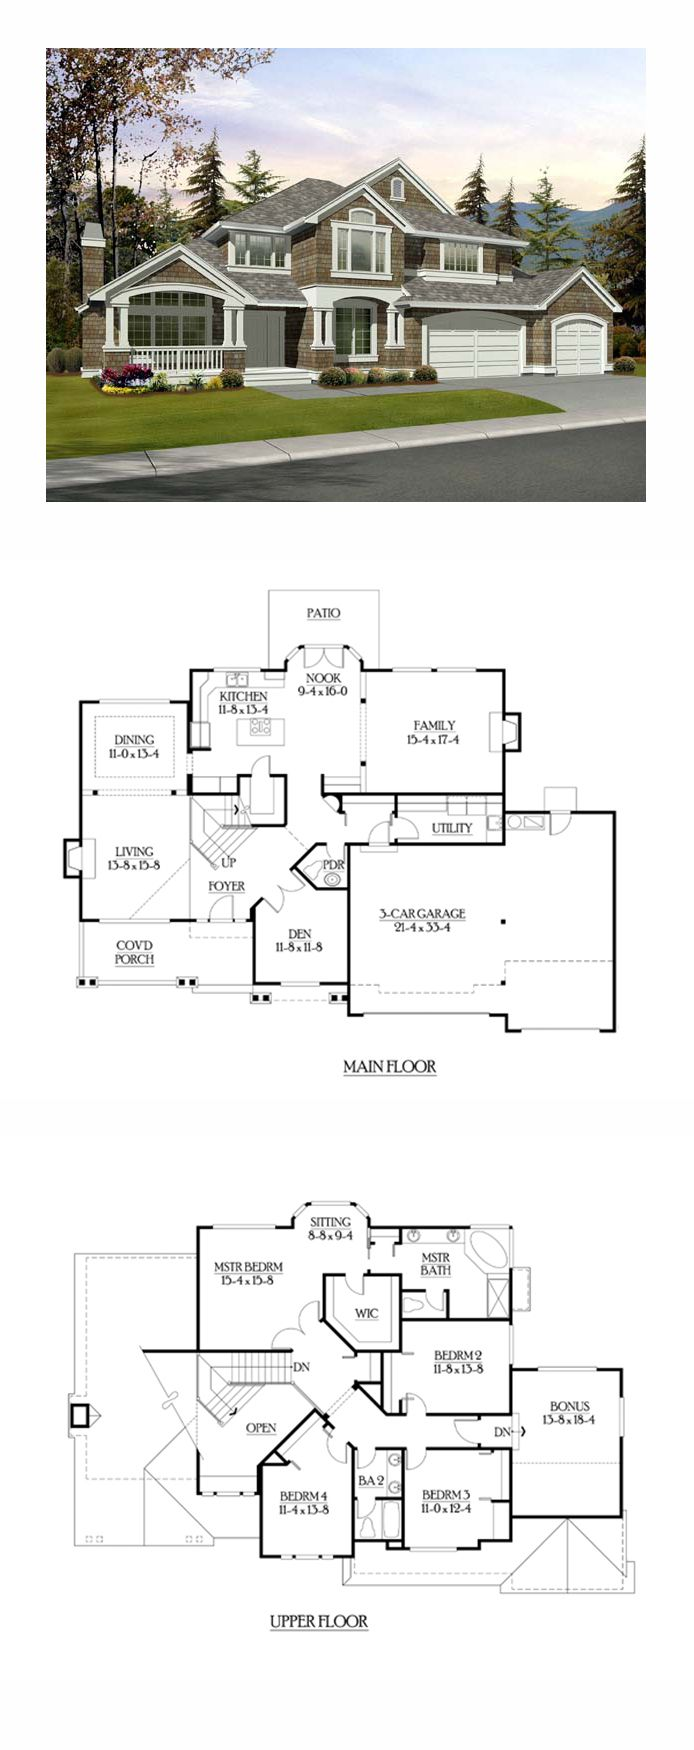 Small 5 Bedroom House Plans 17 Best Ideas About 5 Bedroom House On Pinterest 5 Bedroom House